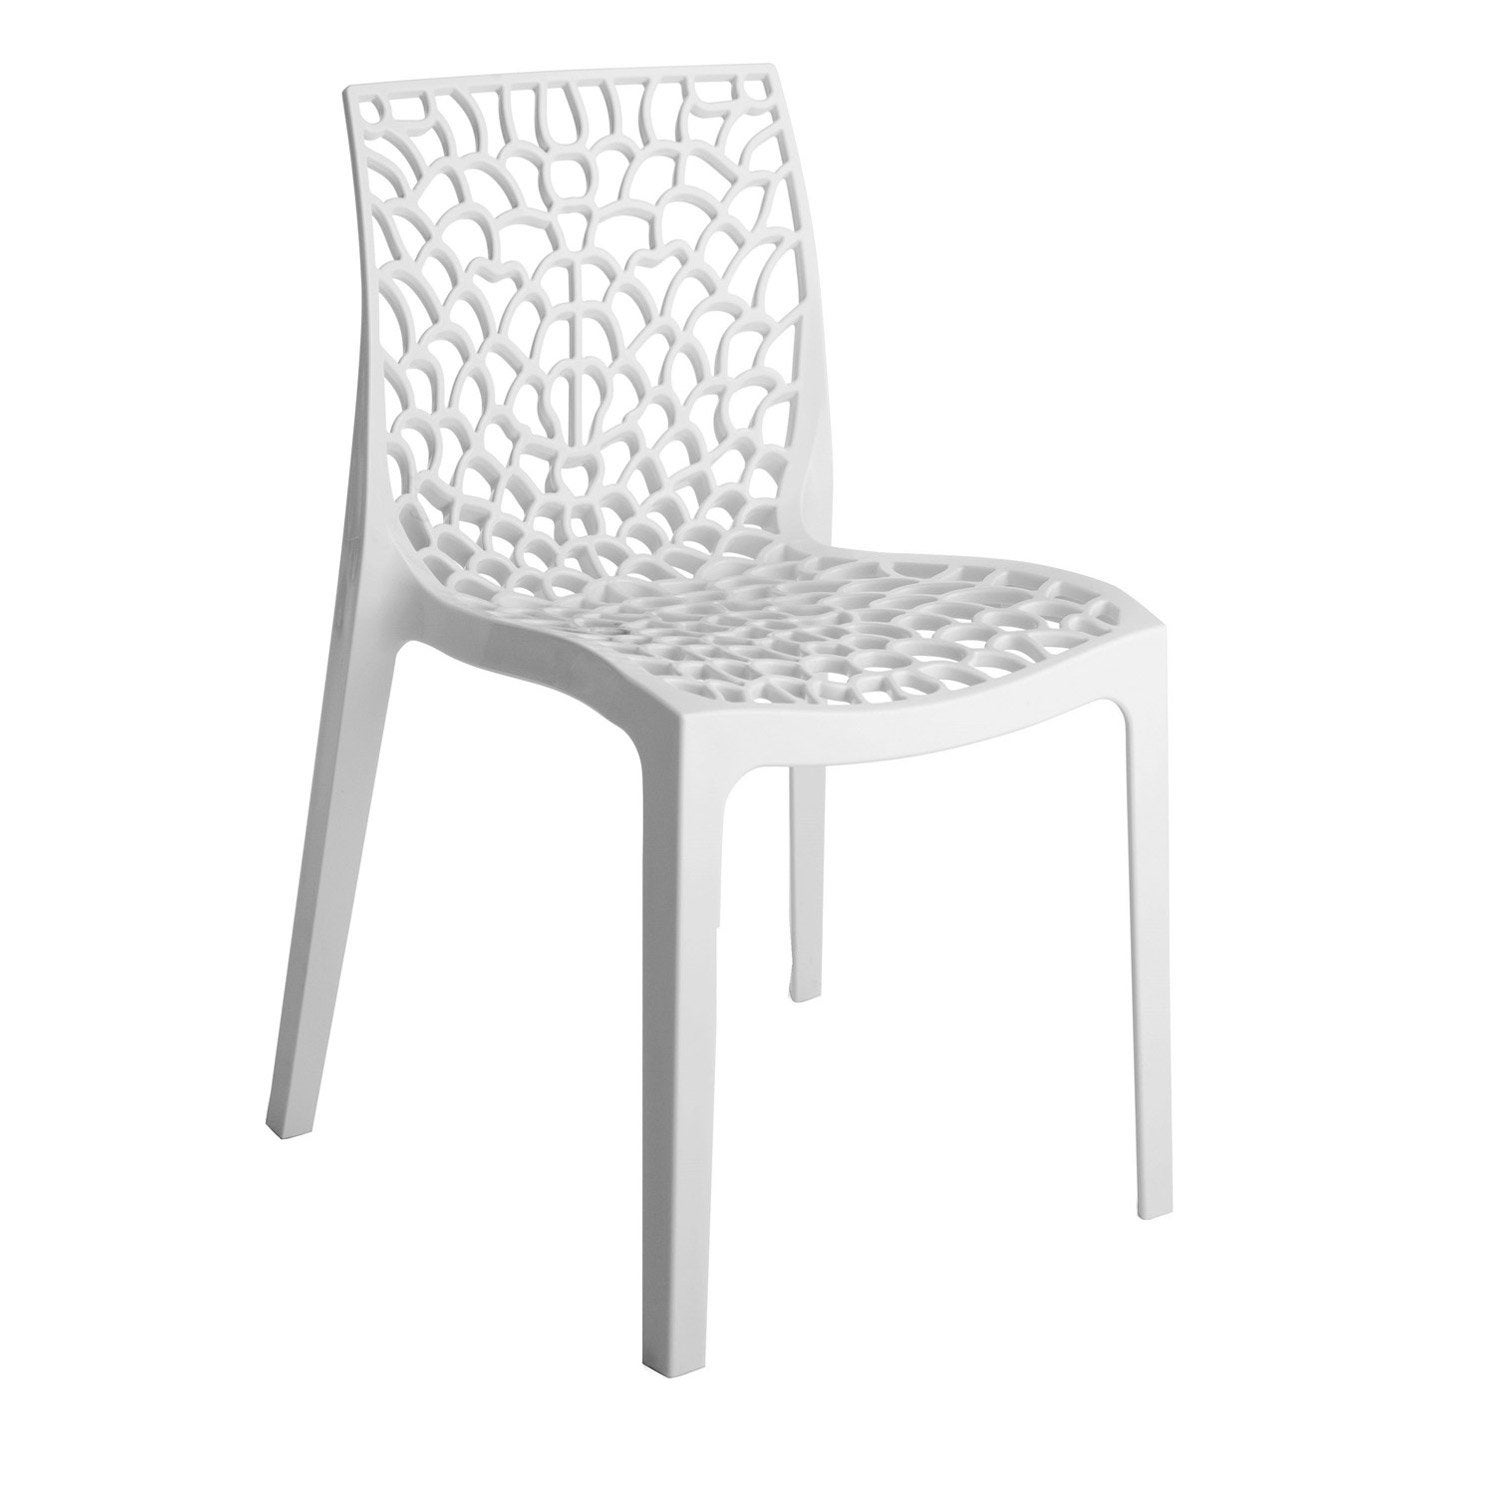 Chaise de jardin en r sine grafik blanc leroy merlin for Chaise grillage design